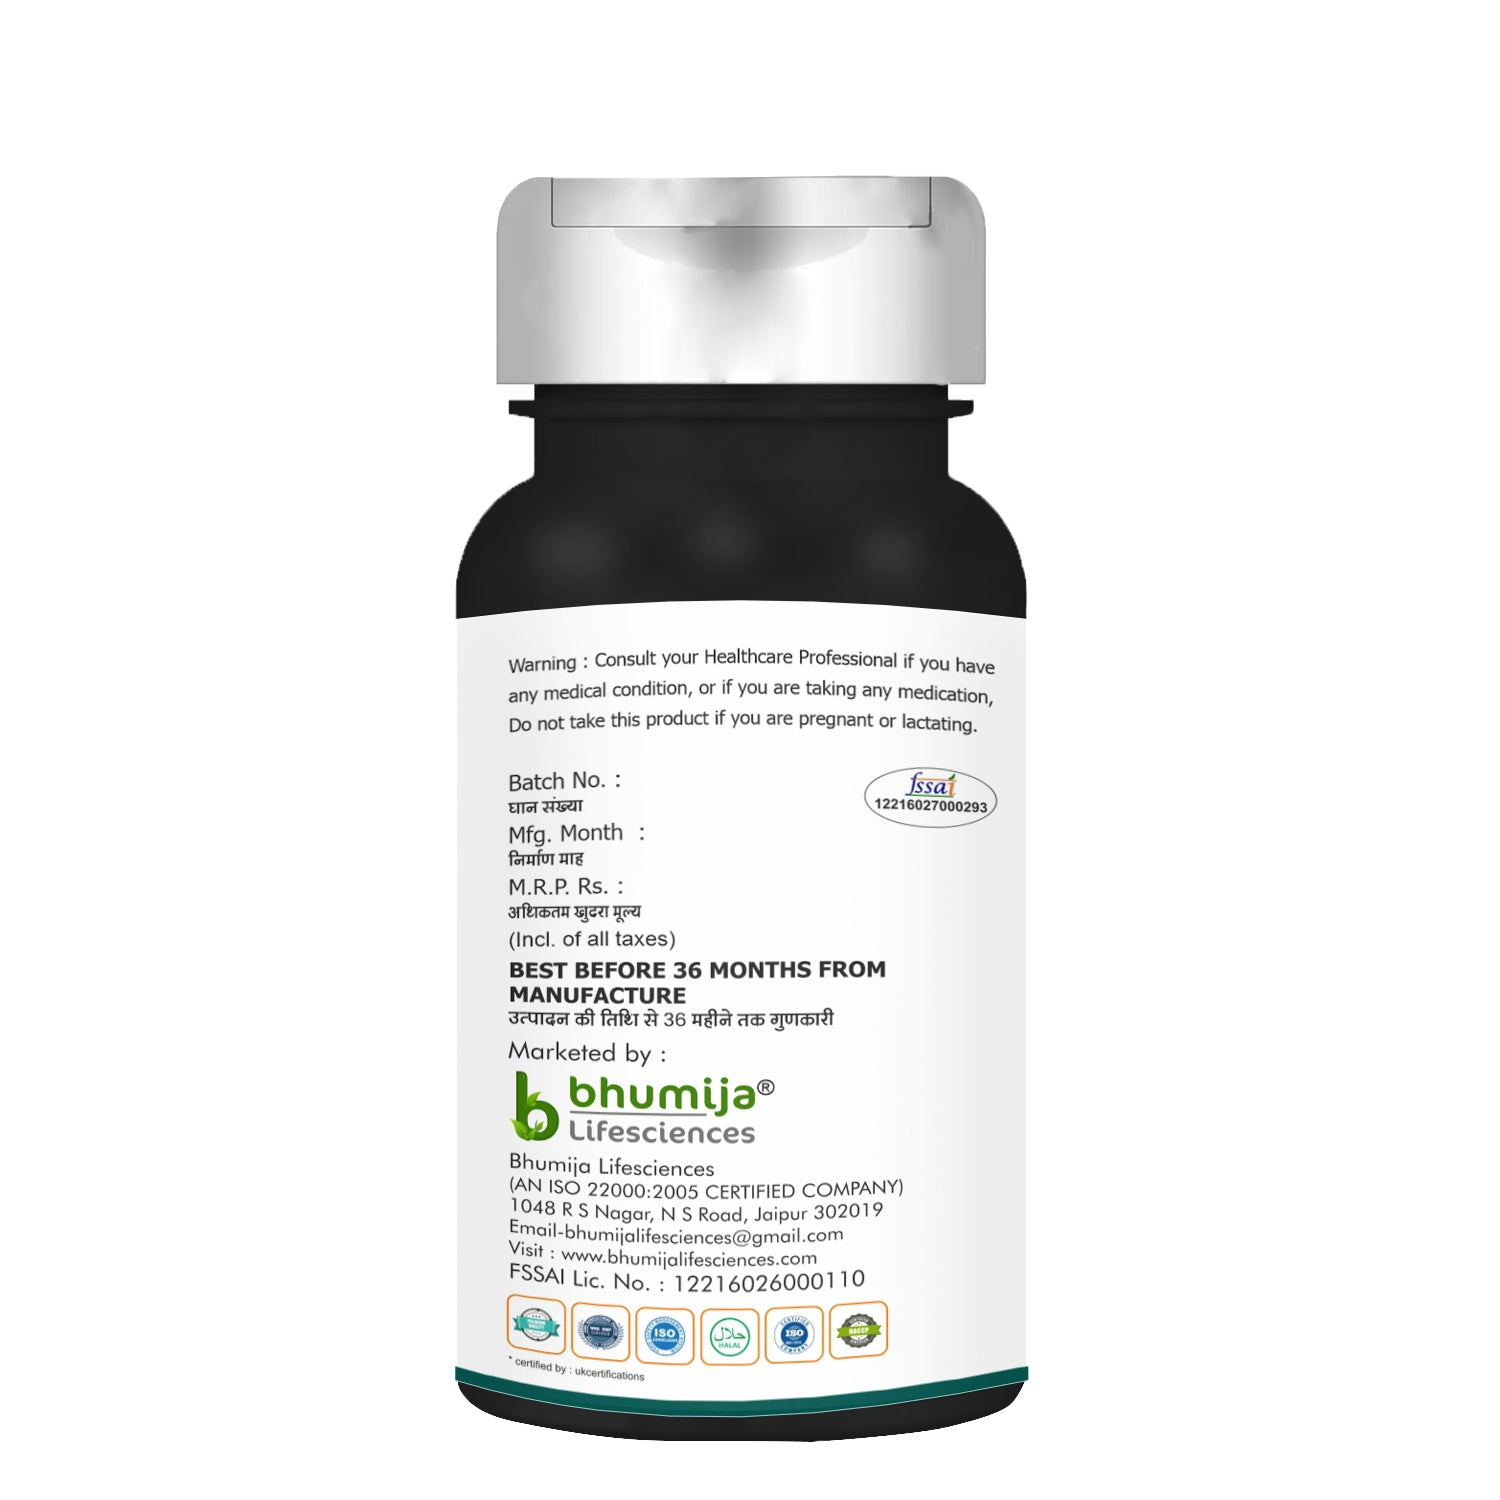 Bhumija Lifesciences Milk Thistle 250mg Tablets (60 Tab) for Detoxification & optimizing Liver Functions